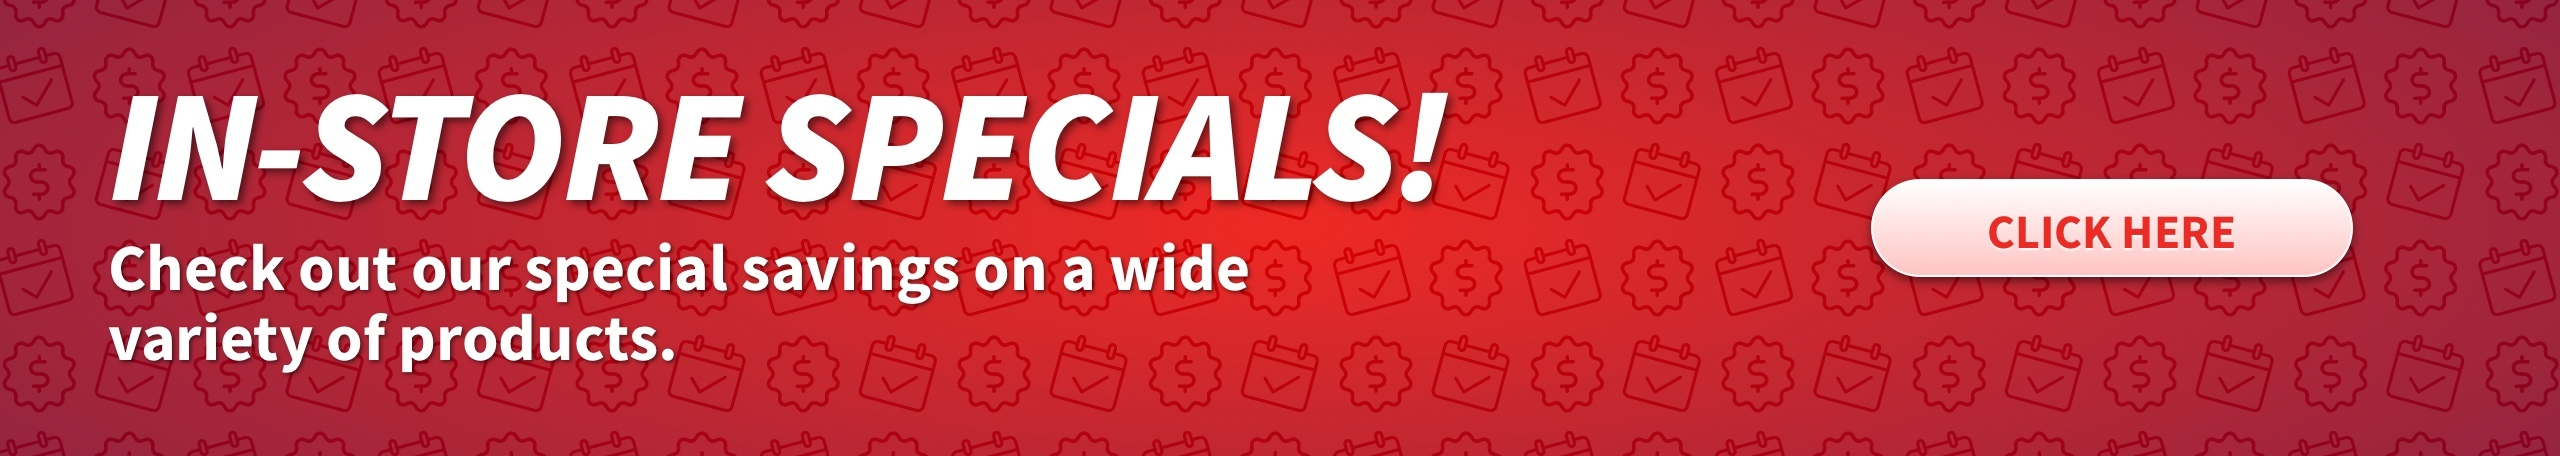 In-Store Specials at Hurn's Hardware - check out our special savings on a wide variety of products - click here